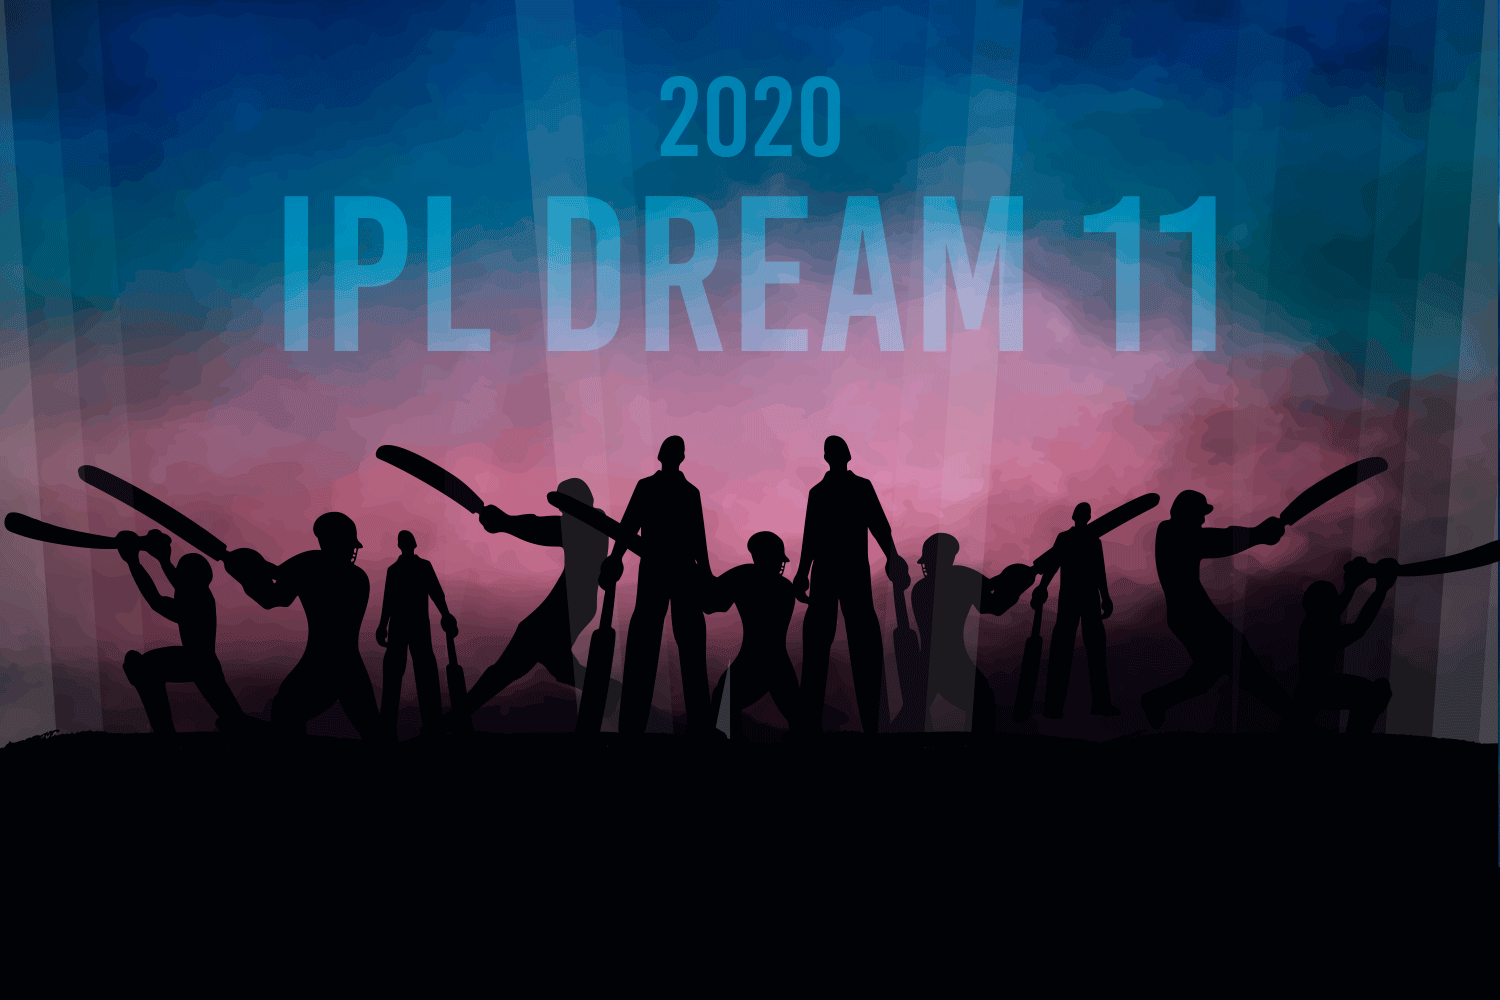 best cricket players of the IPL 2020